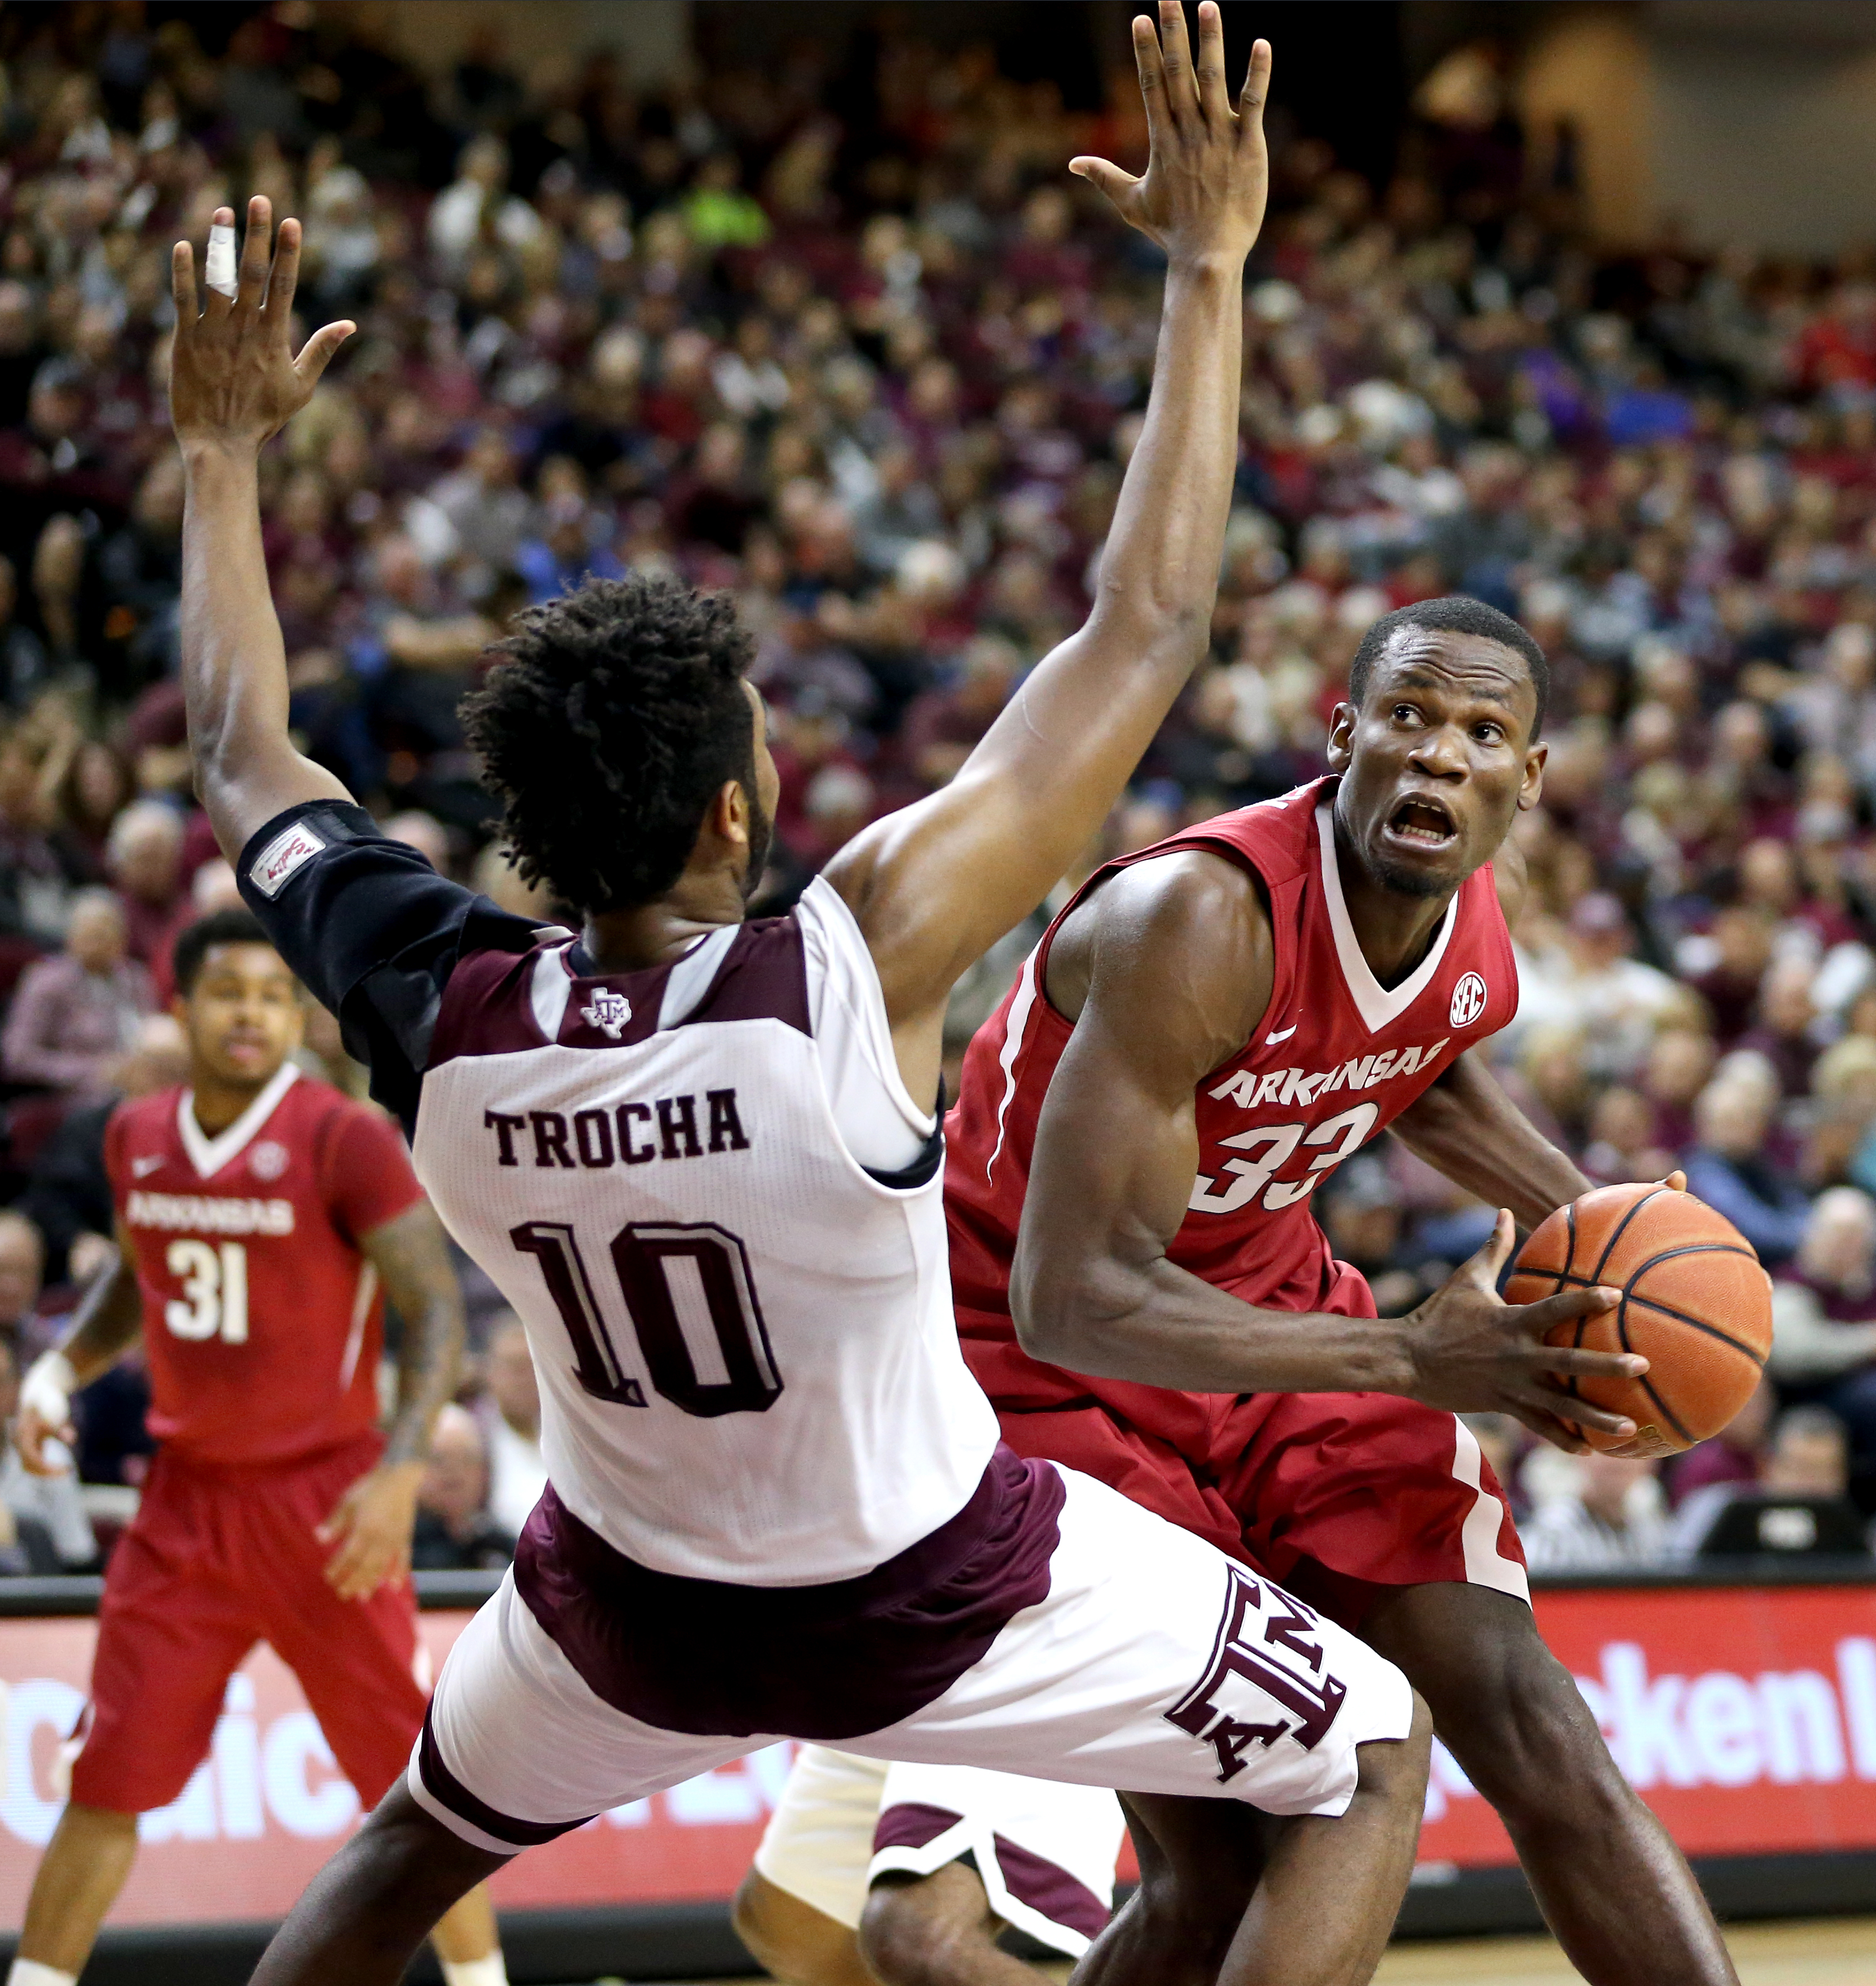 Arkansas' Moses Kingsley (33) drives the lane for a basket against Texas A&M's Tonny Trocha-Morelos (10) during the first half of an NCAA college basketball game Saturday, Jan. 2, 2016, in College Station,Texas. (AP Photo/Sam Craft)